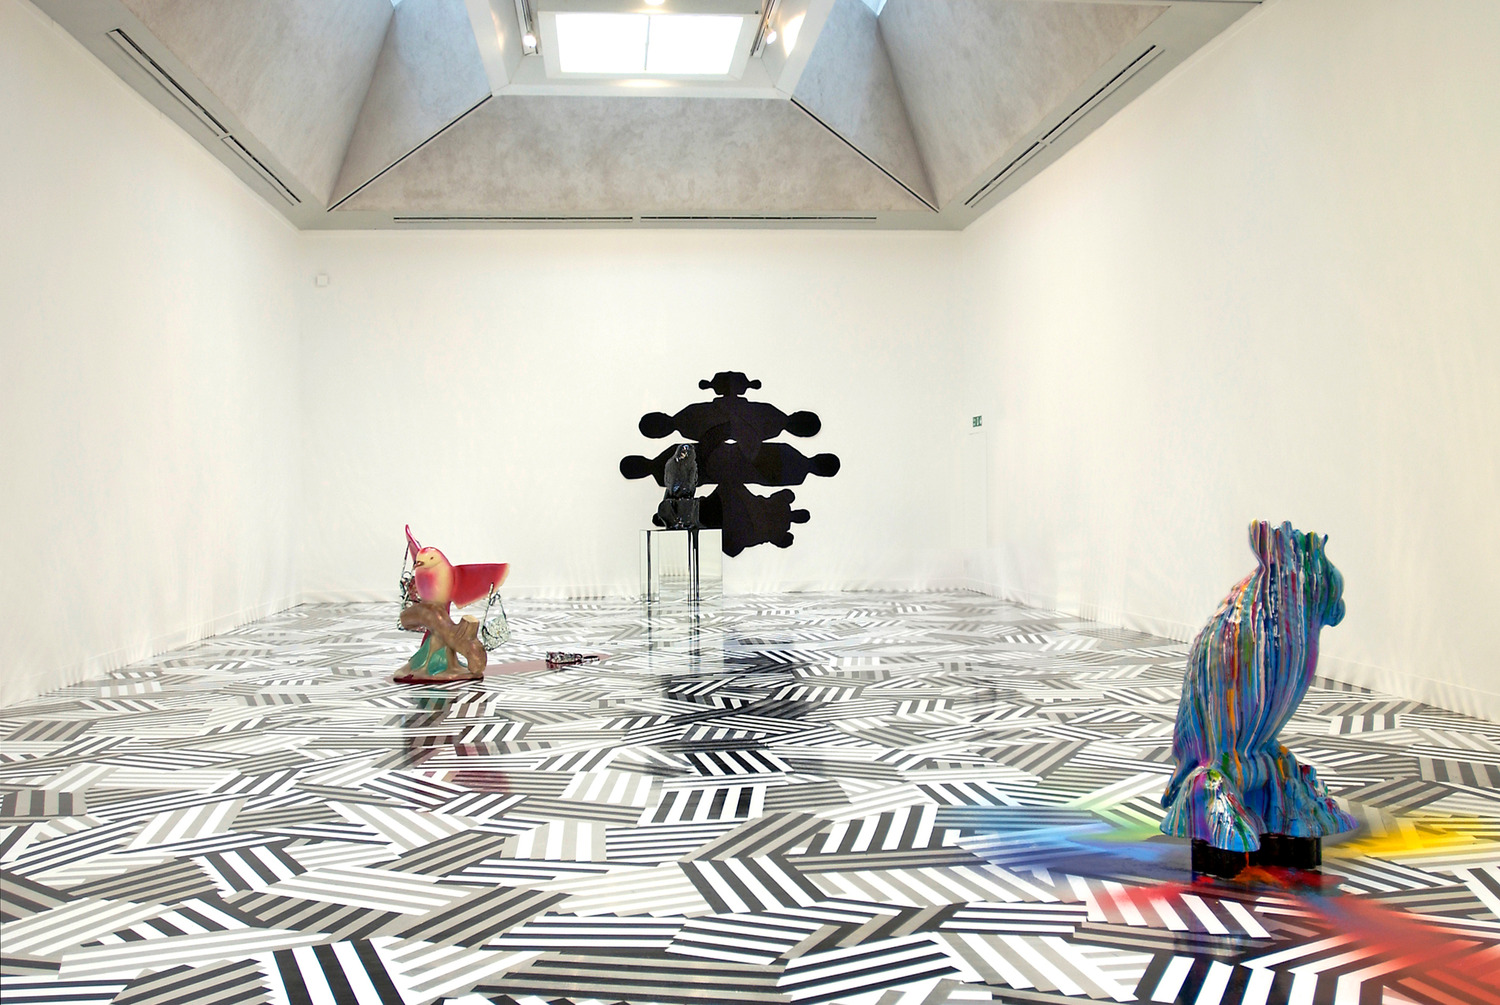 Installation view 'Turner Prize 2005', Tate Britain, 2005